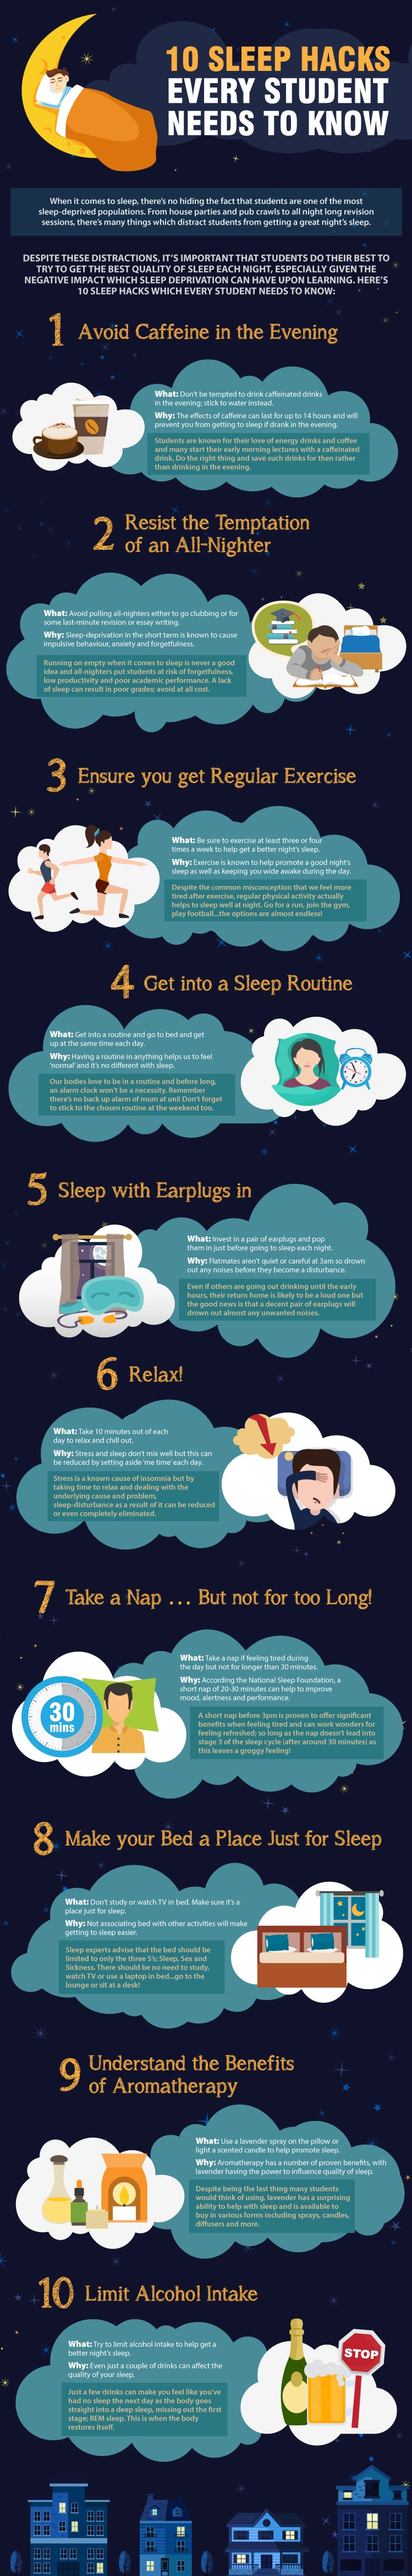 10 sleep hacks